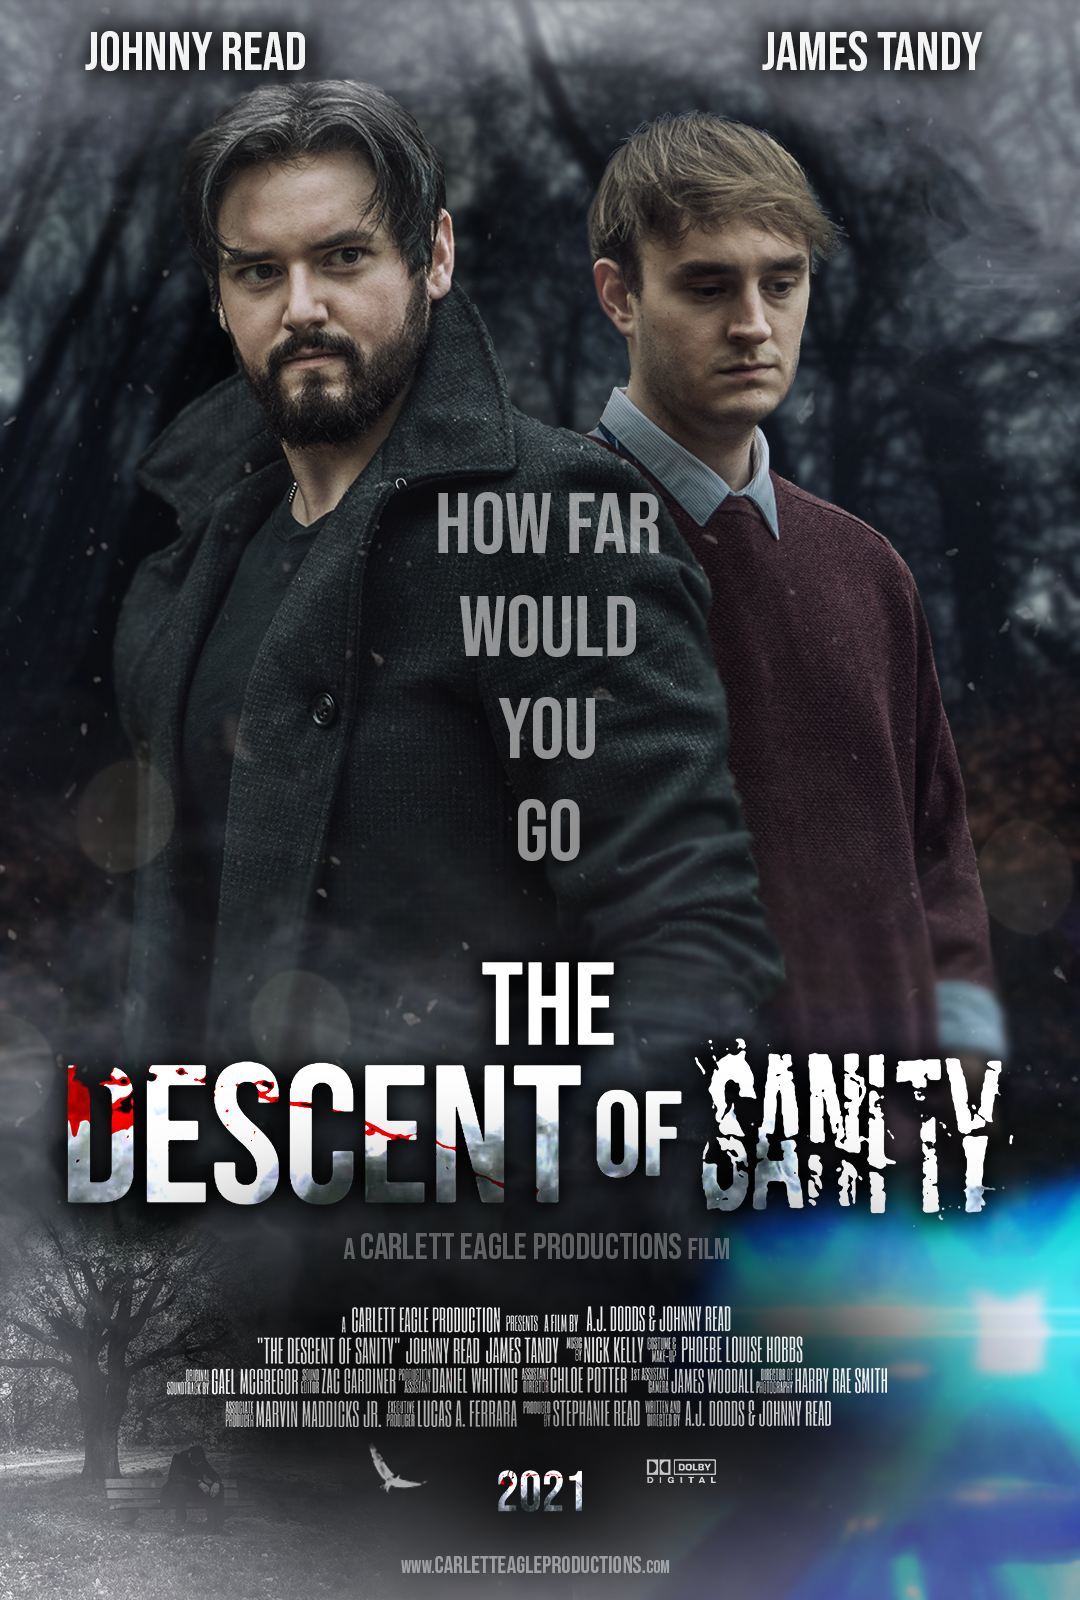 The Descent of Sanity